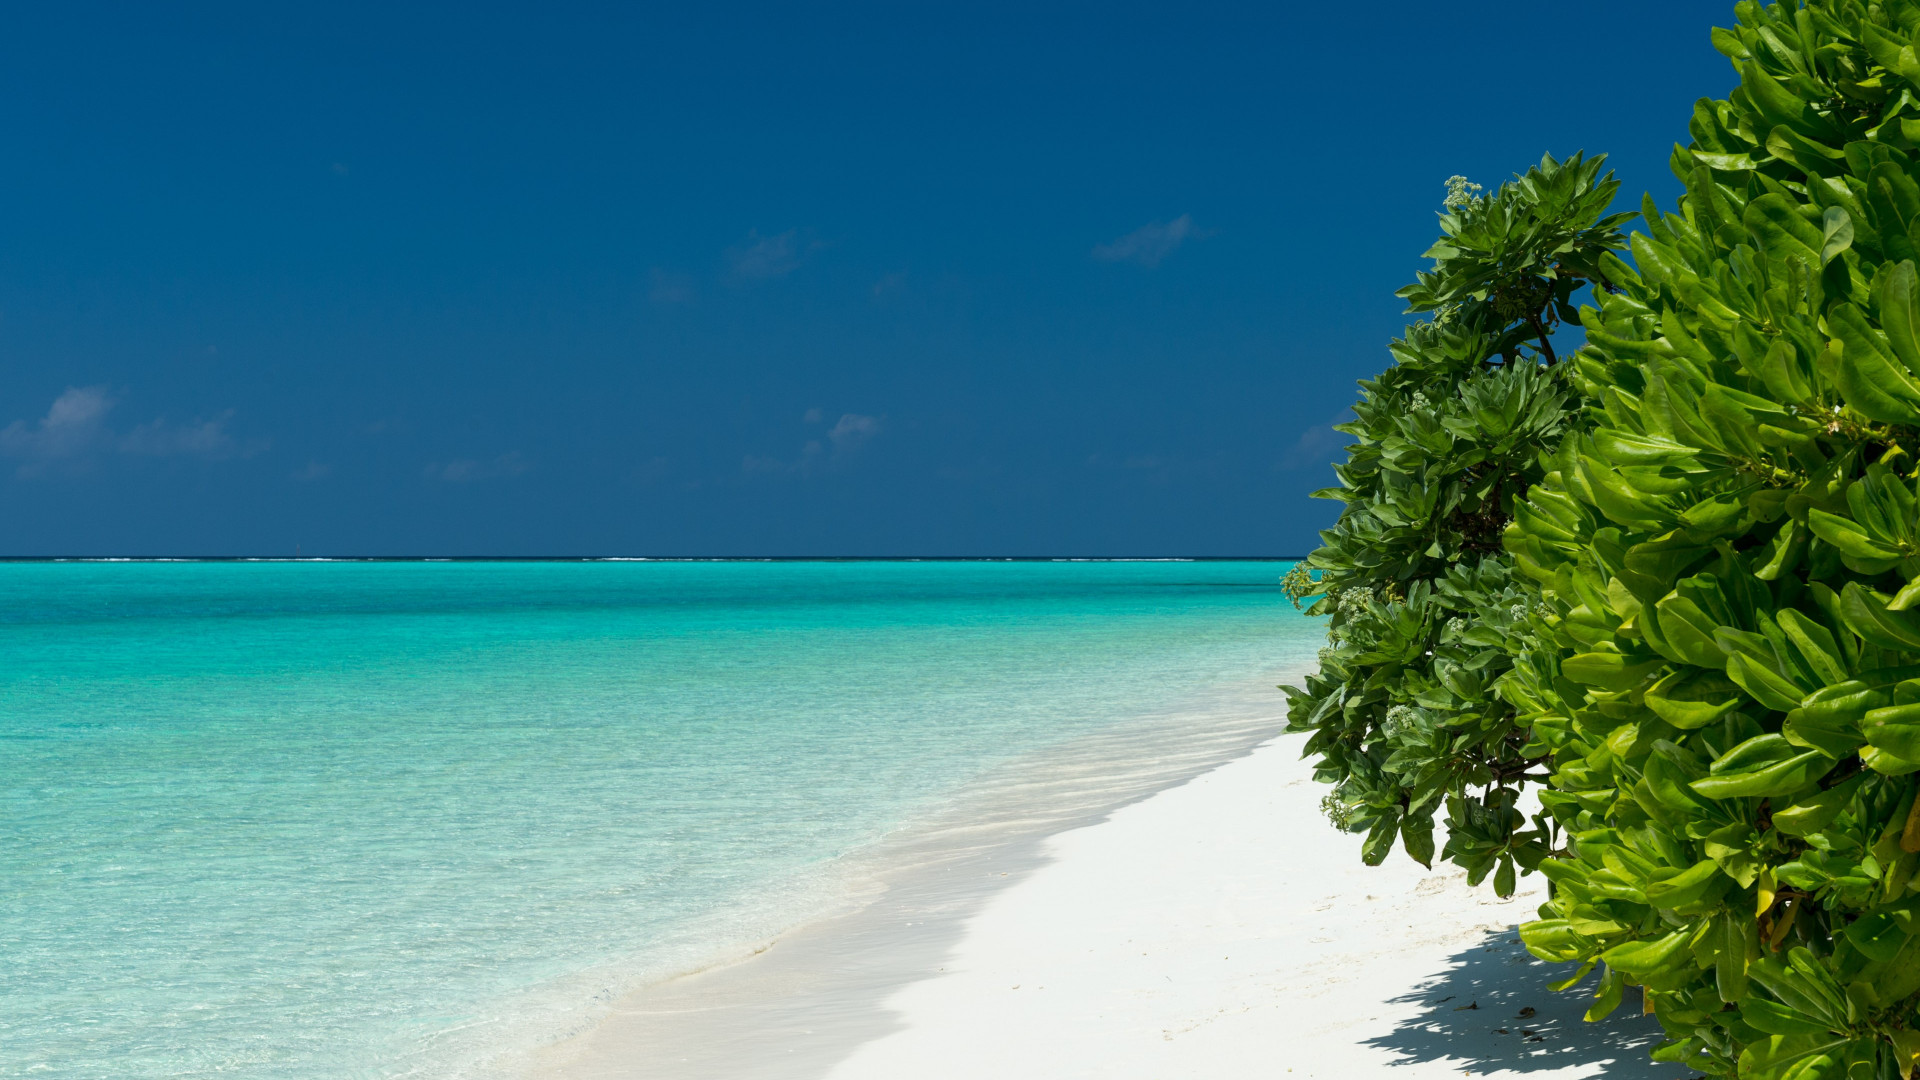 Turquoise waters of Maldives wallpaper 1920x1080